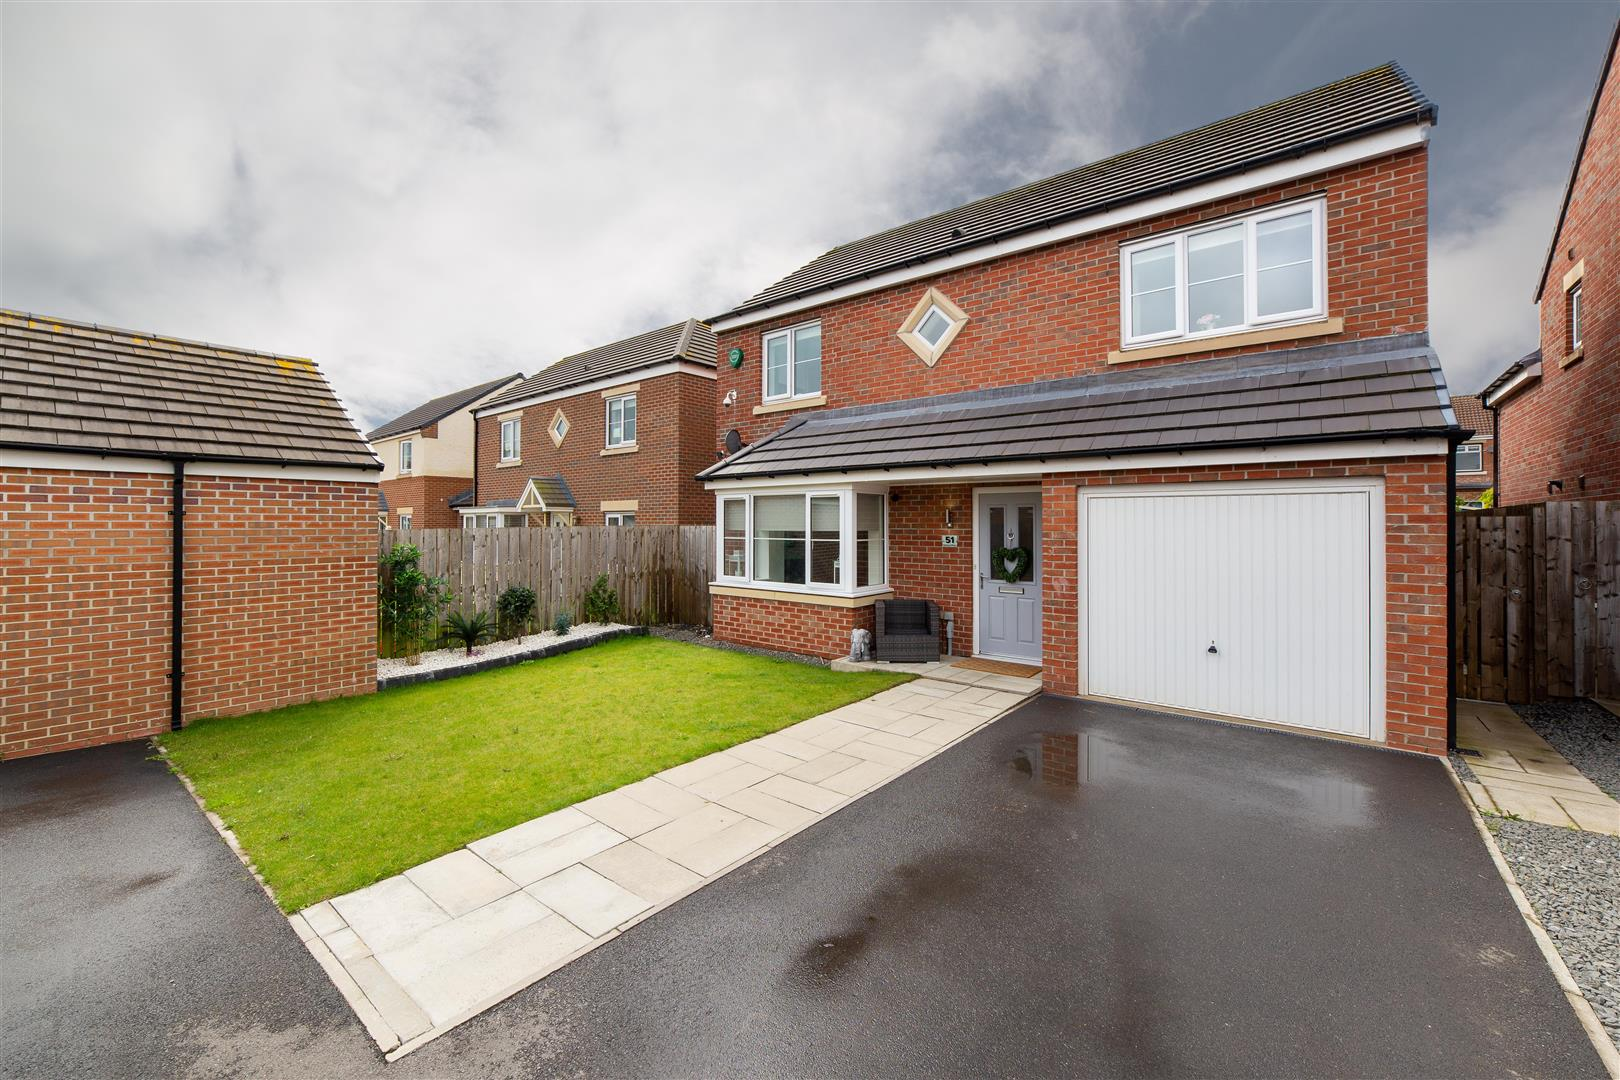 4 bed detached house for sale in Newcastle Upon Tyne, NE13 6LE - Property Image 1